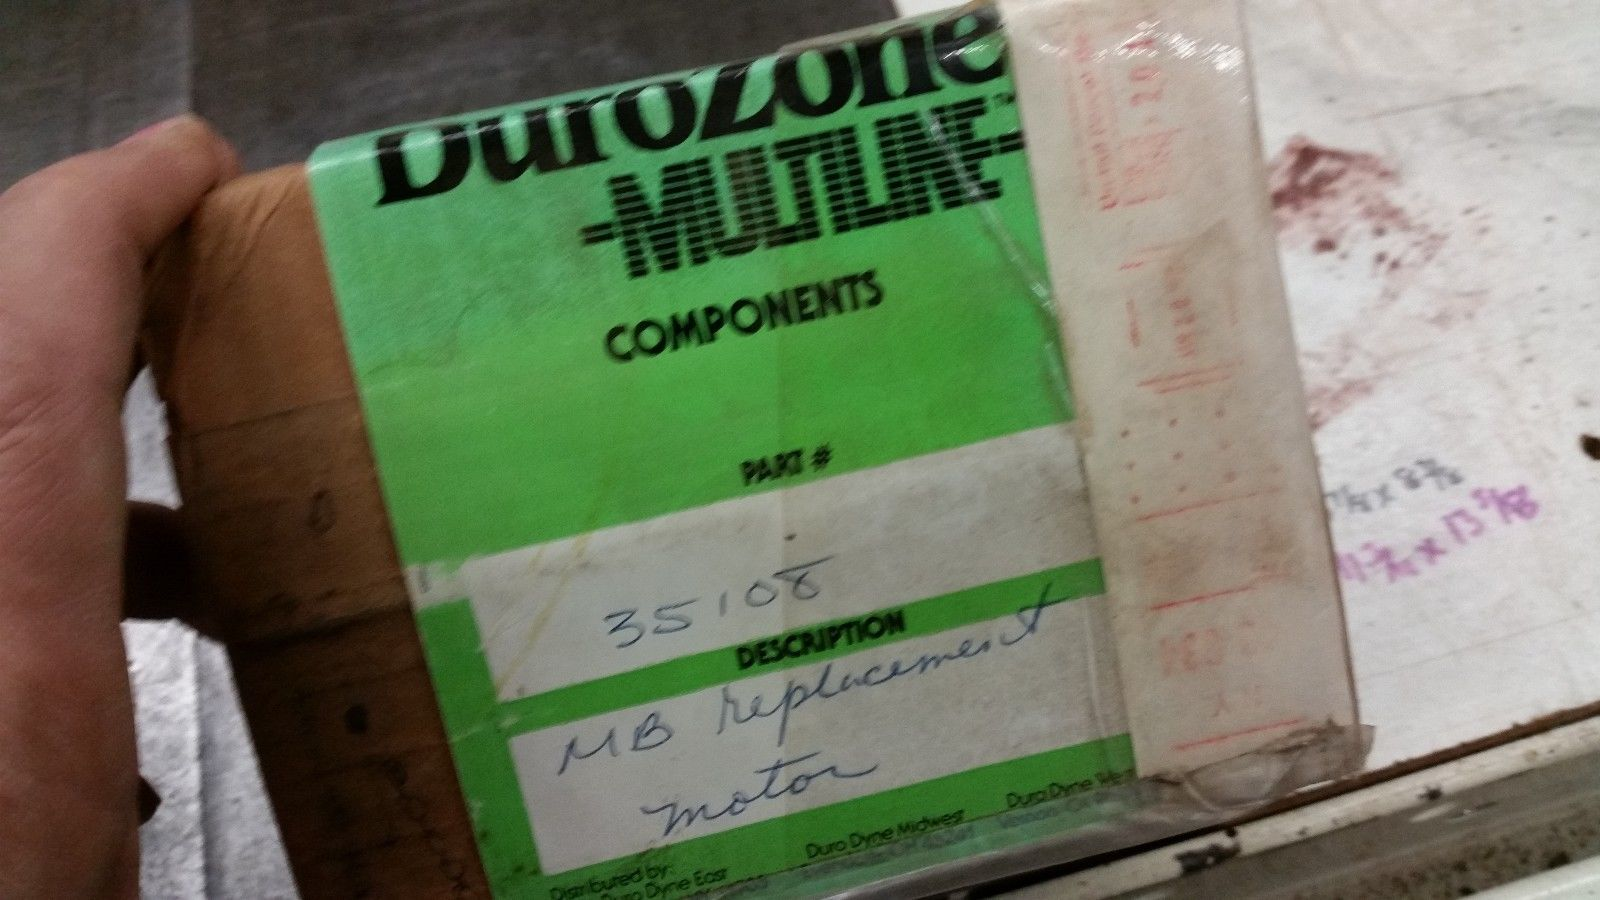 Durozone replacement damper motor rm34 new and 10 similar for Durozone damper motor replacement